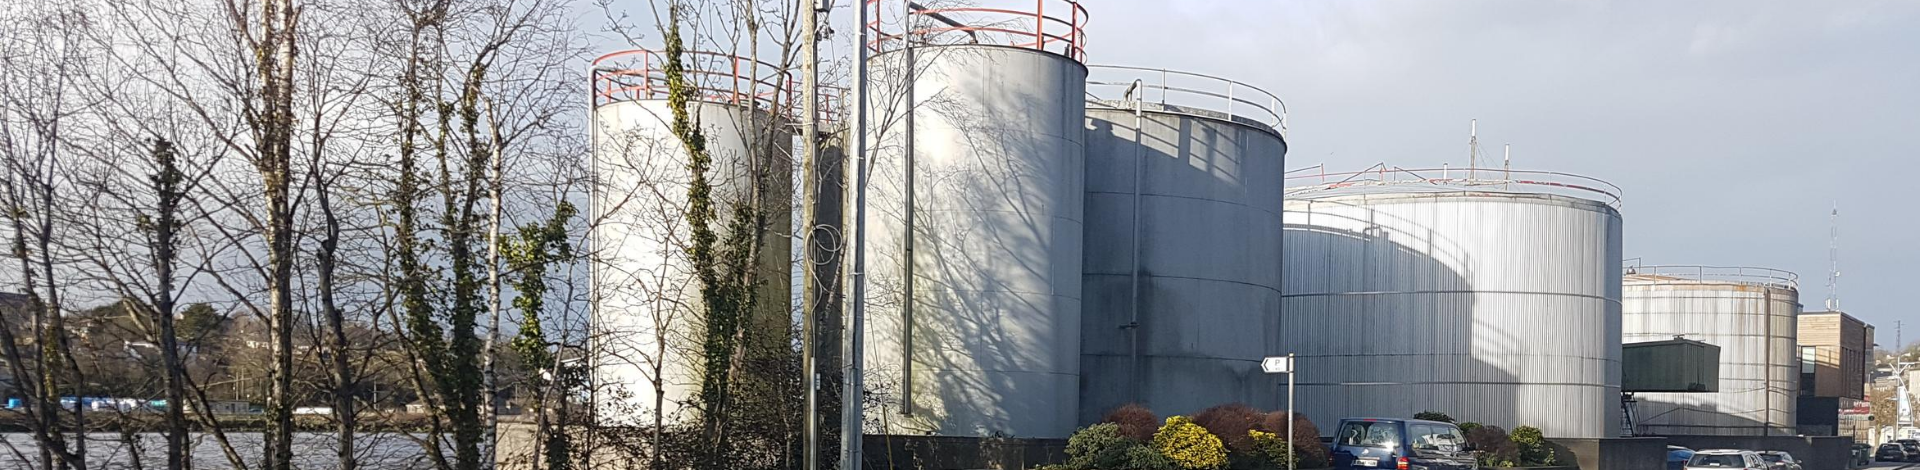 Image of Fuel Storage Tanks in New Ross